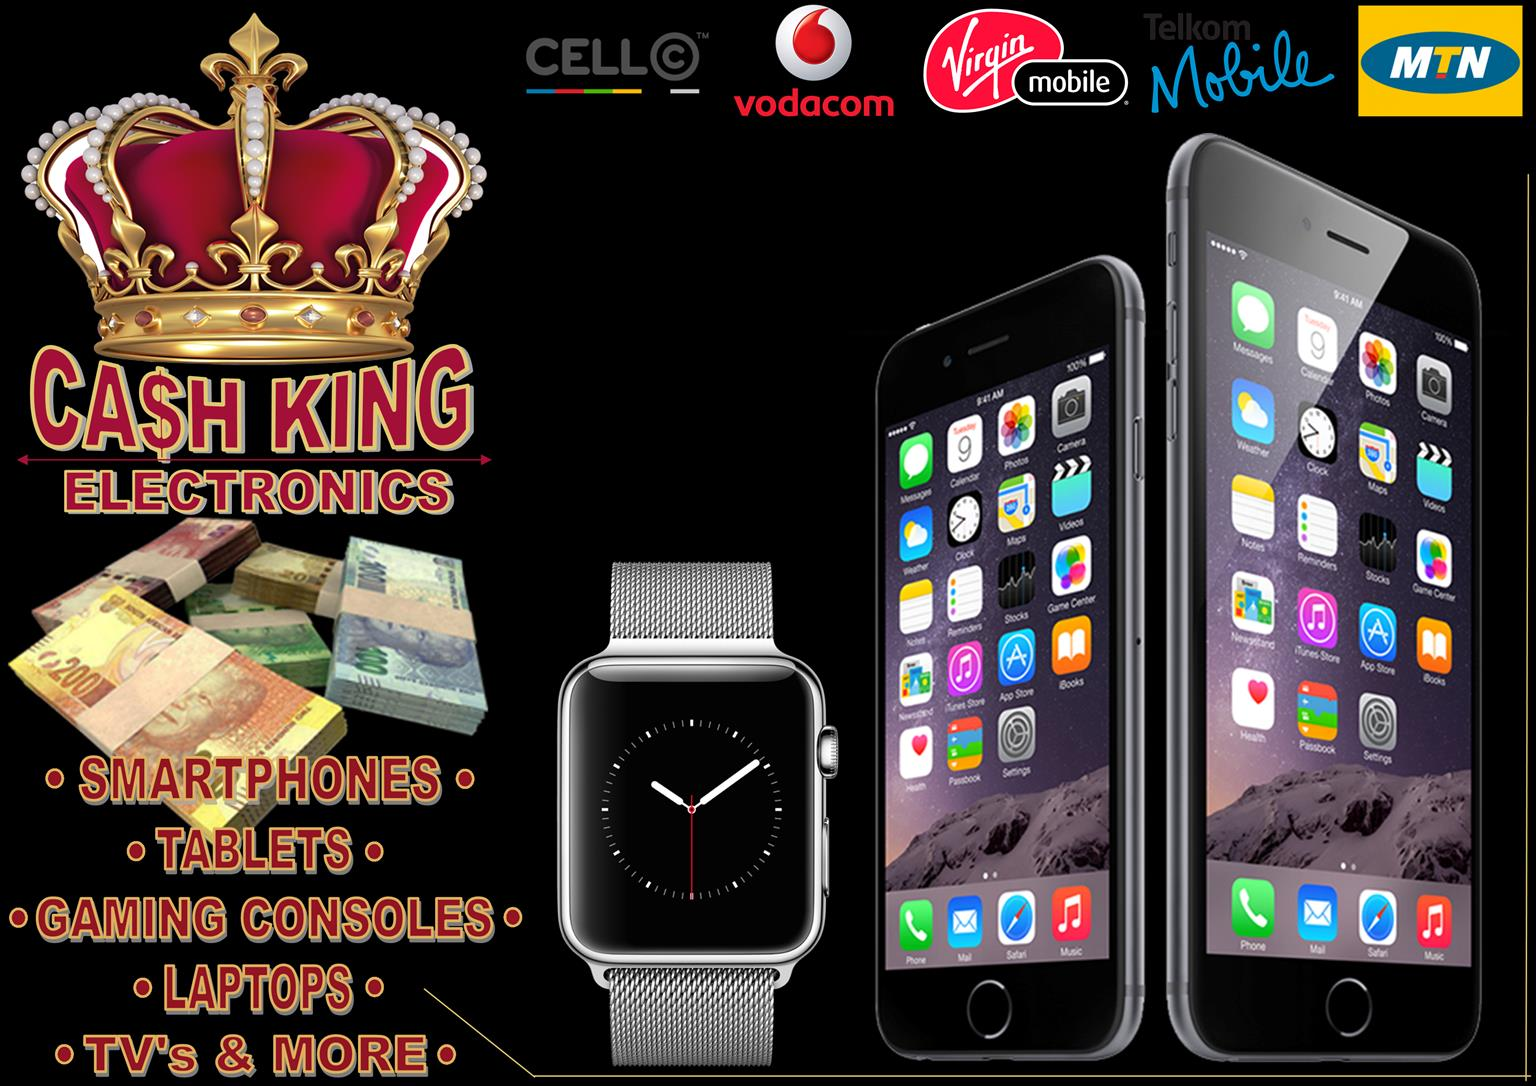 WANTED!!! Iphone, Samsung and Other Mobile Devices!!! Cash On The Spot